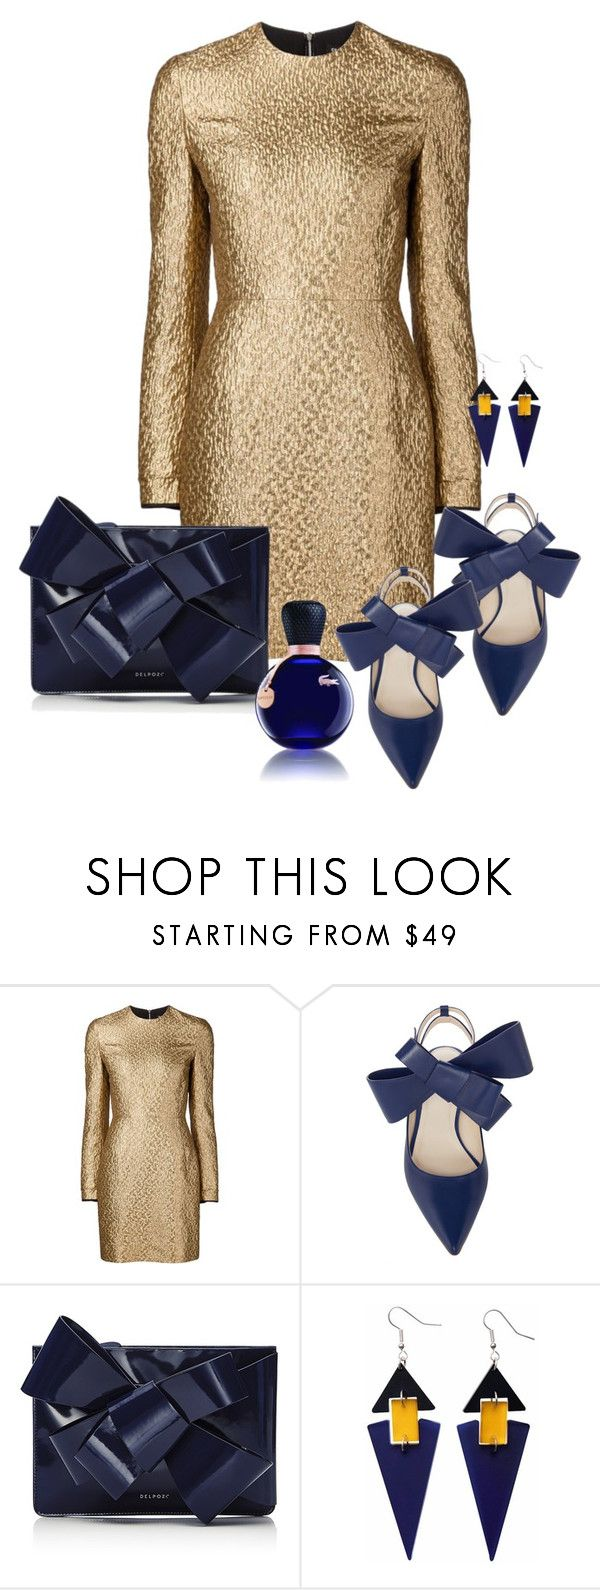 """""""Matching bag and shoes with bow: Delpozo"""" by onelittleme ❤ liked on Polyvore featuring Creatures of the Wind, Delpozo, Toolally, Lacoste, gold, Blue, dress and navy"""